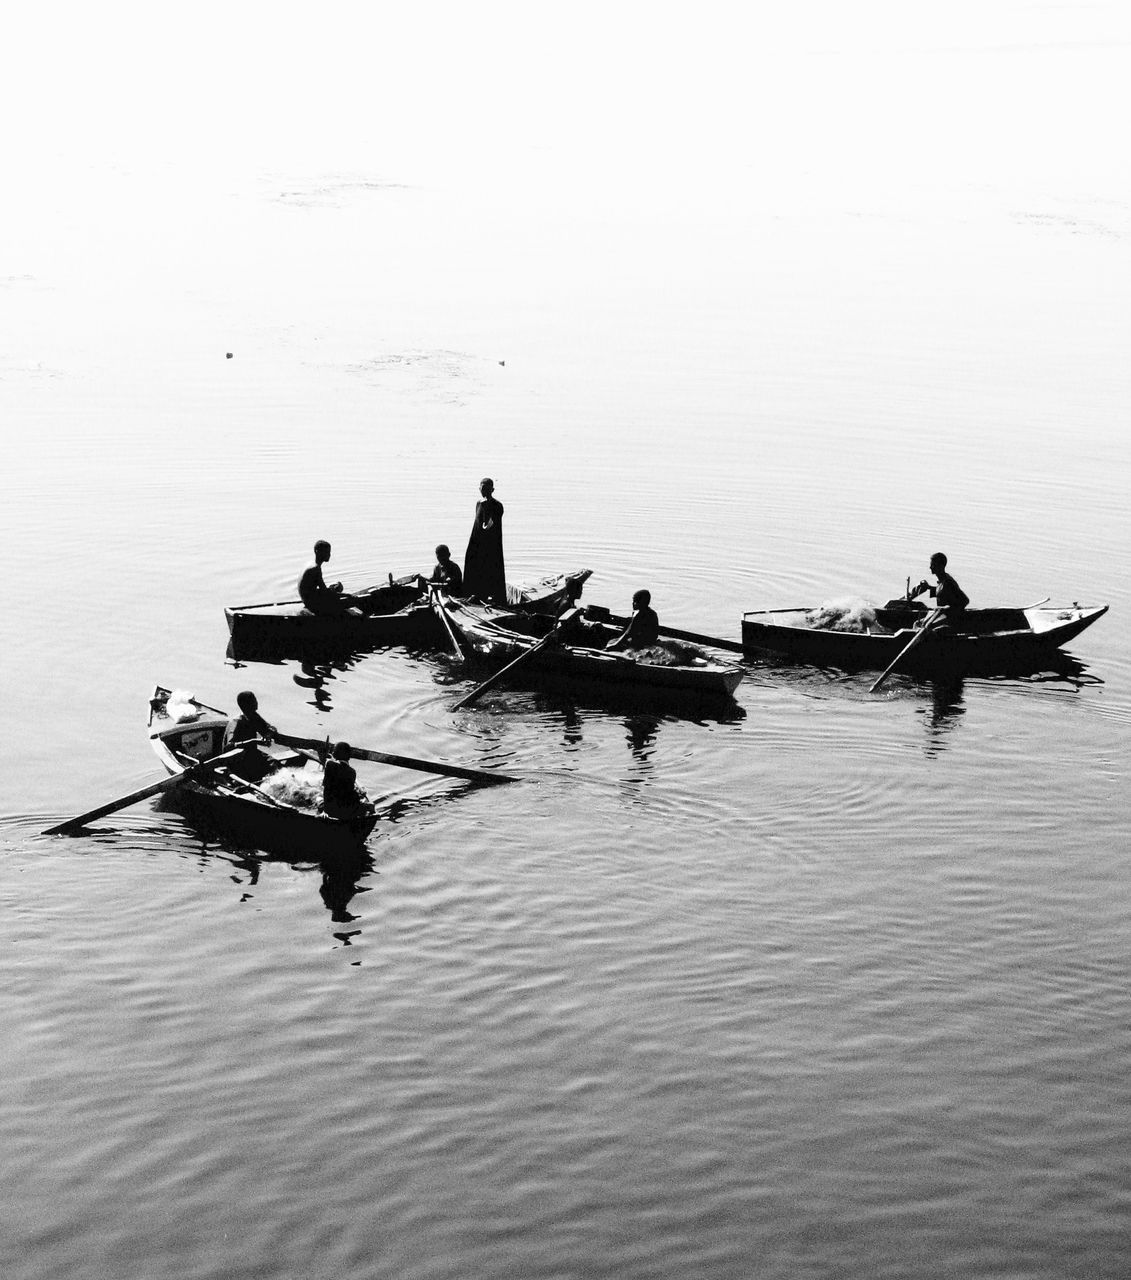 nautical vessel, transportation, mode of transport, water, rowing, oar, men, real people, silhouette, nature, outdoors, occupation, day, rowboat, teamwork, beauty in nature, sailing, longtail boat, gondola - traditional boat, one person, sky, people